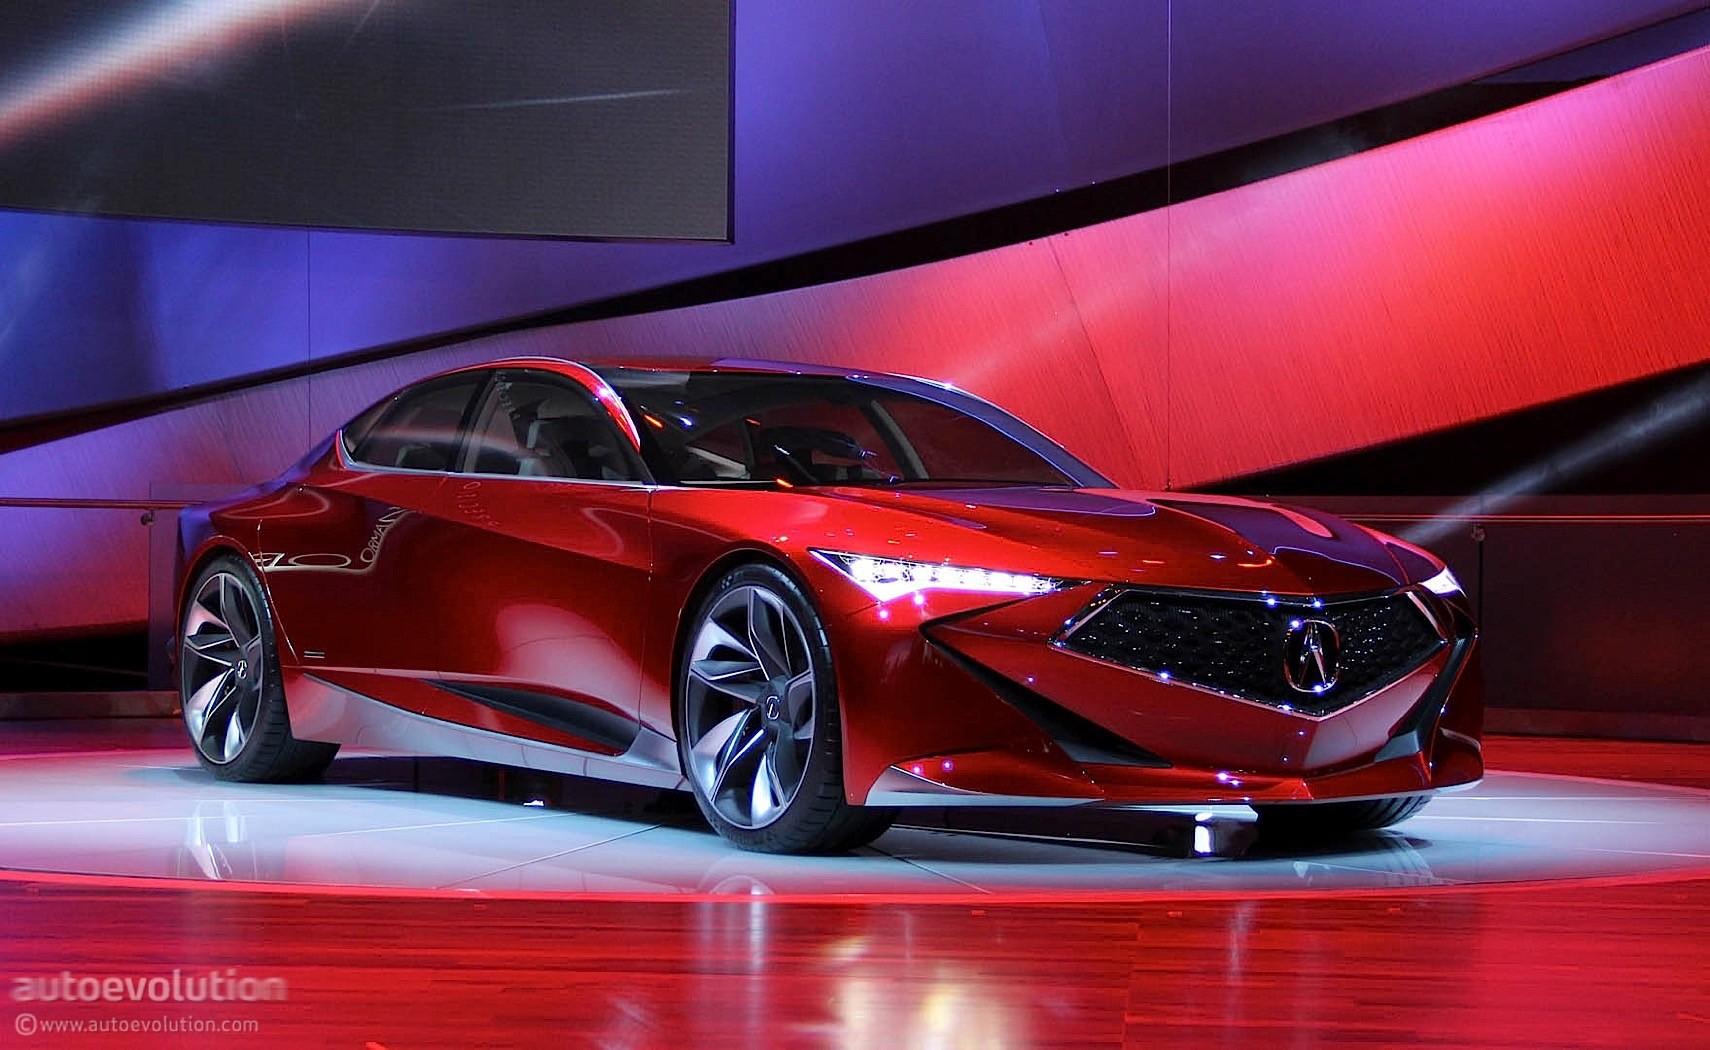 Acura S Next Generation Rlx To Be Inspired By Precision